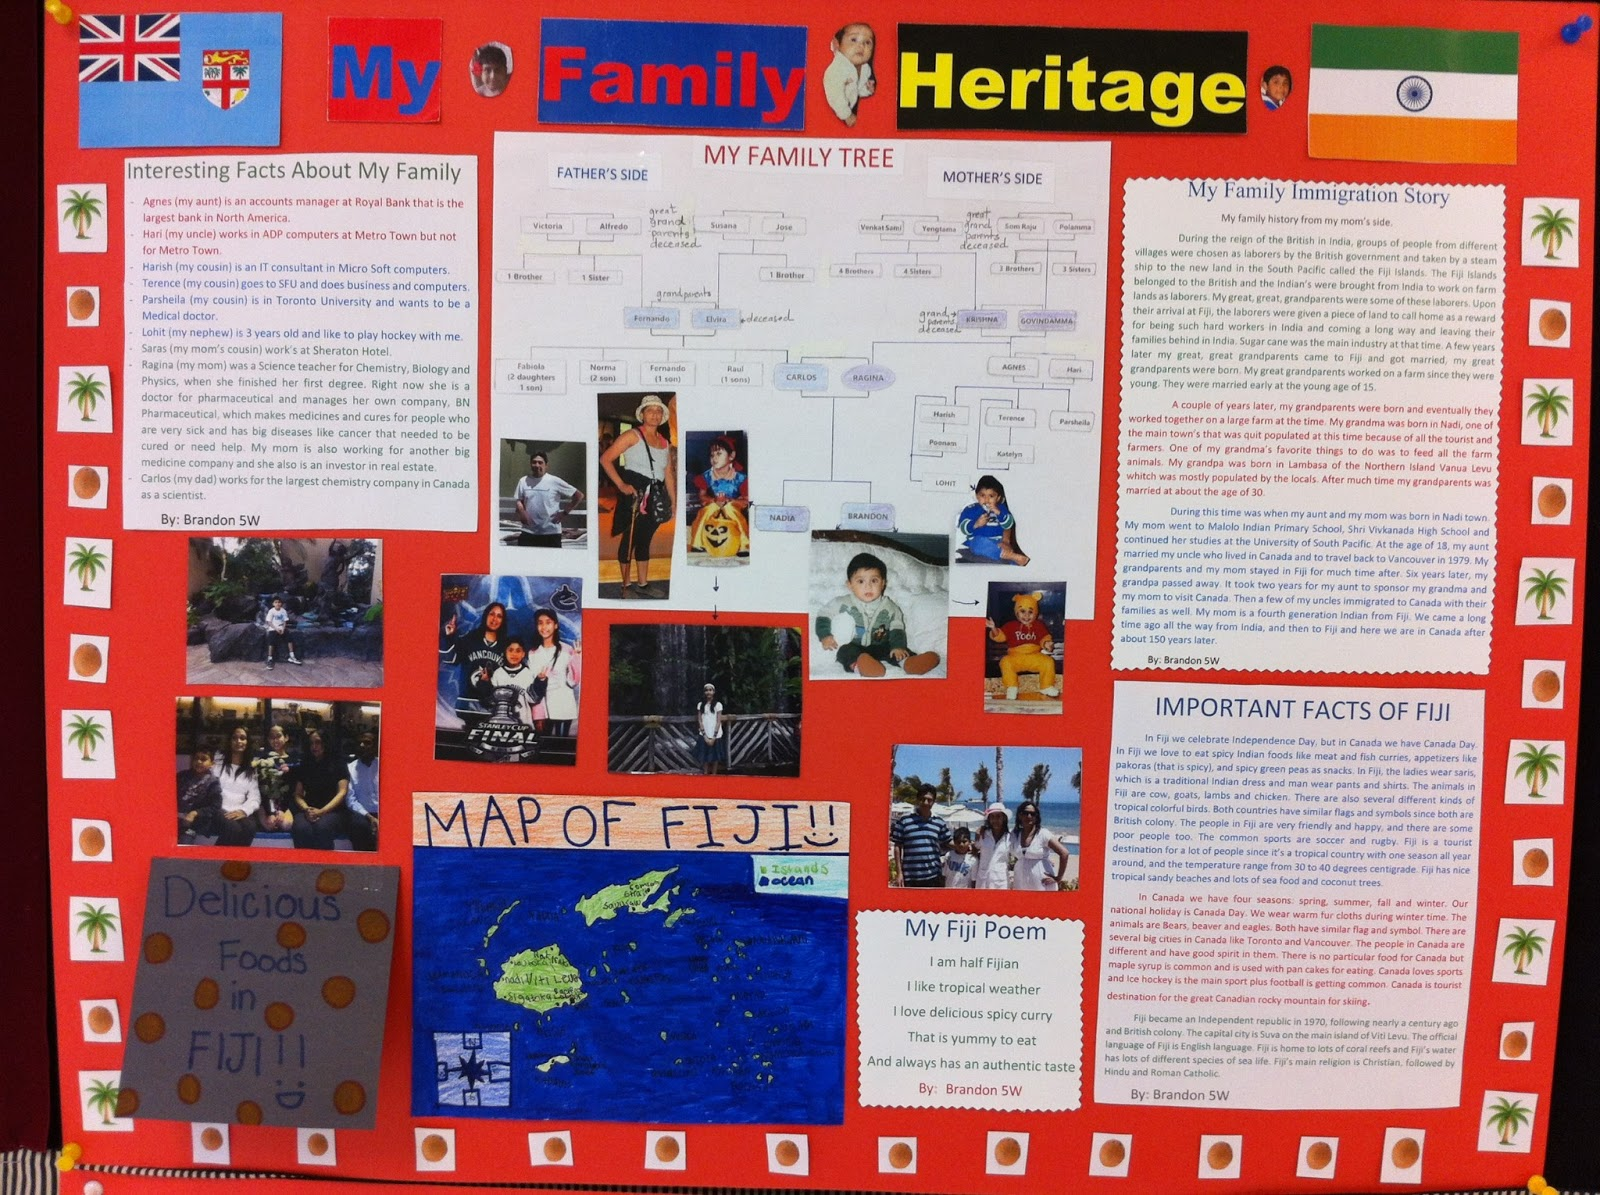 """family heritage project Family interview home assignments this assignment will give you a chance to interview a interview member of your family and find out more about your """"who i am"""" projects heritage we worked in class to come up with at least three family tree art discovery questions to get the interview started and you have a few folktales basic facts you."""